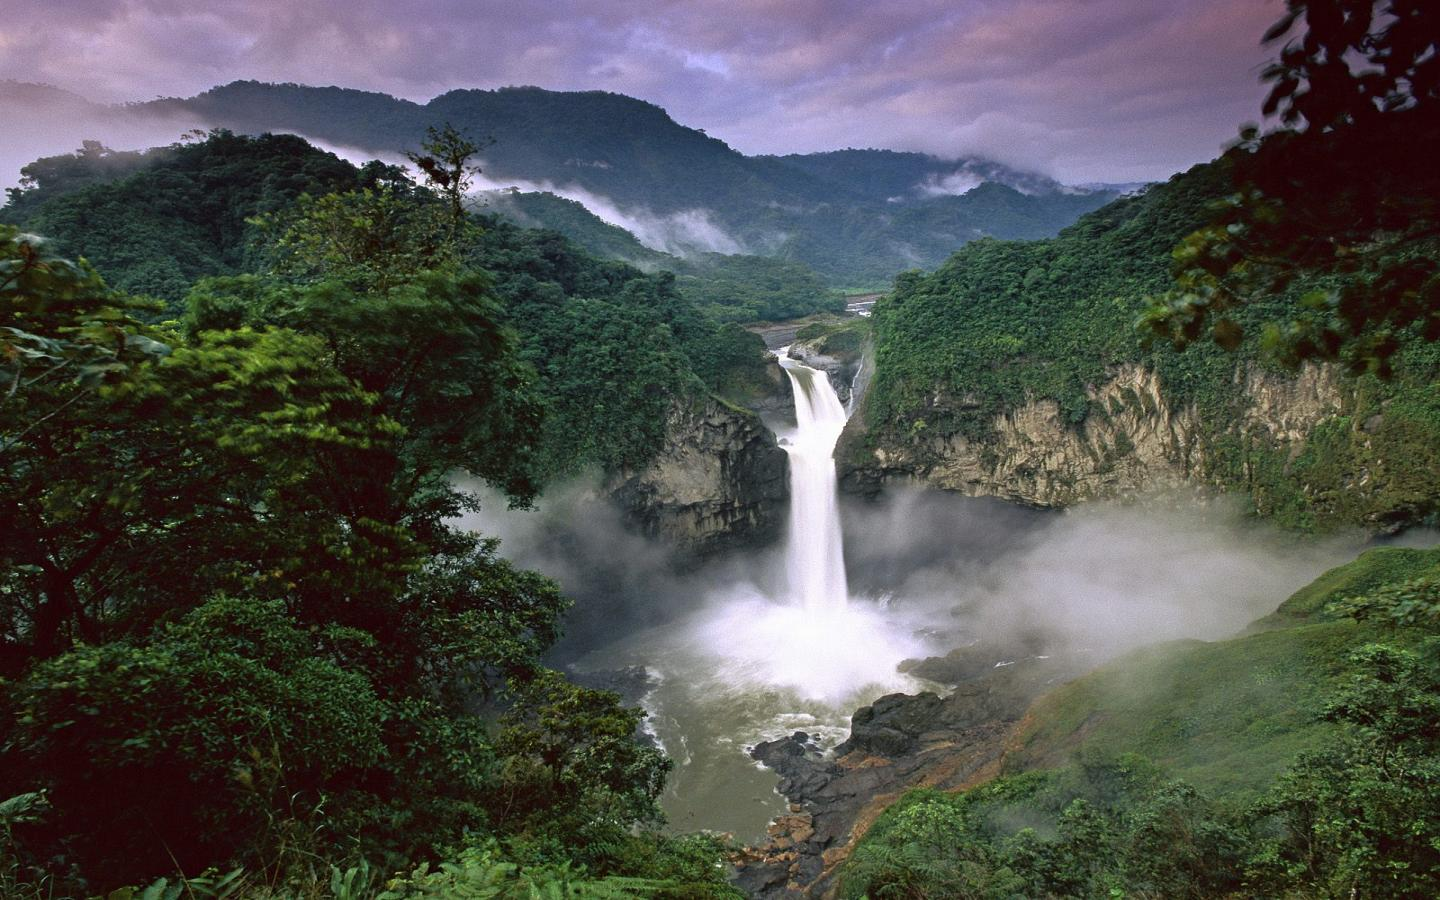 Rainbow-Tropical-Rainforest-Waterfalls_Cool_chillcover.com_